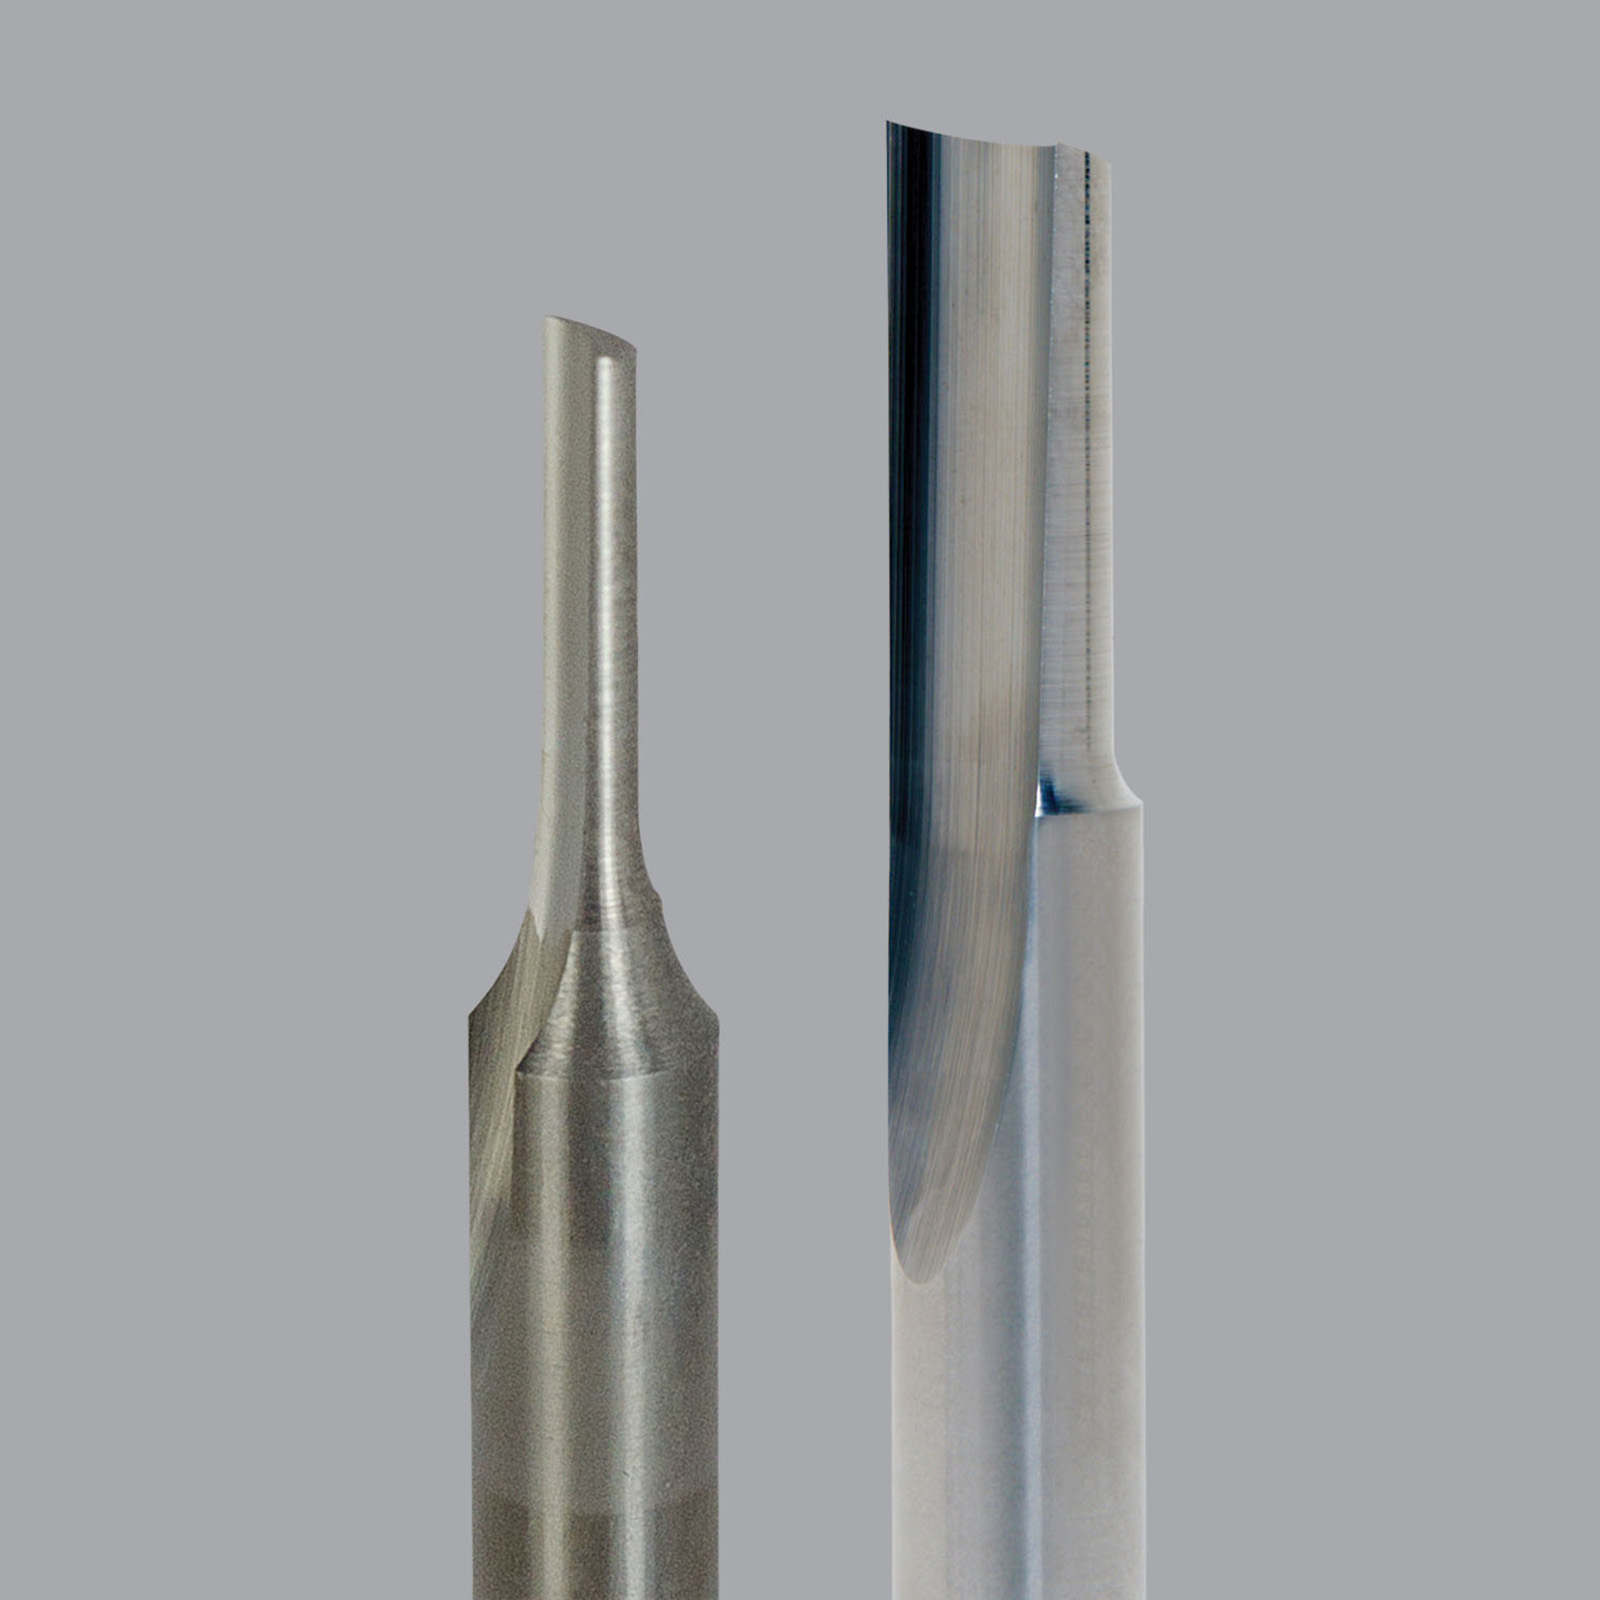 Routing End Mill Alum Onsrud AMC703952 Rougher//Finisher